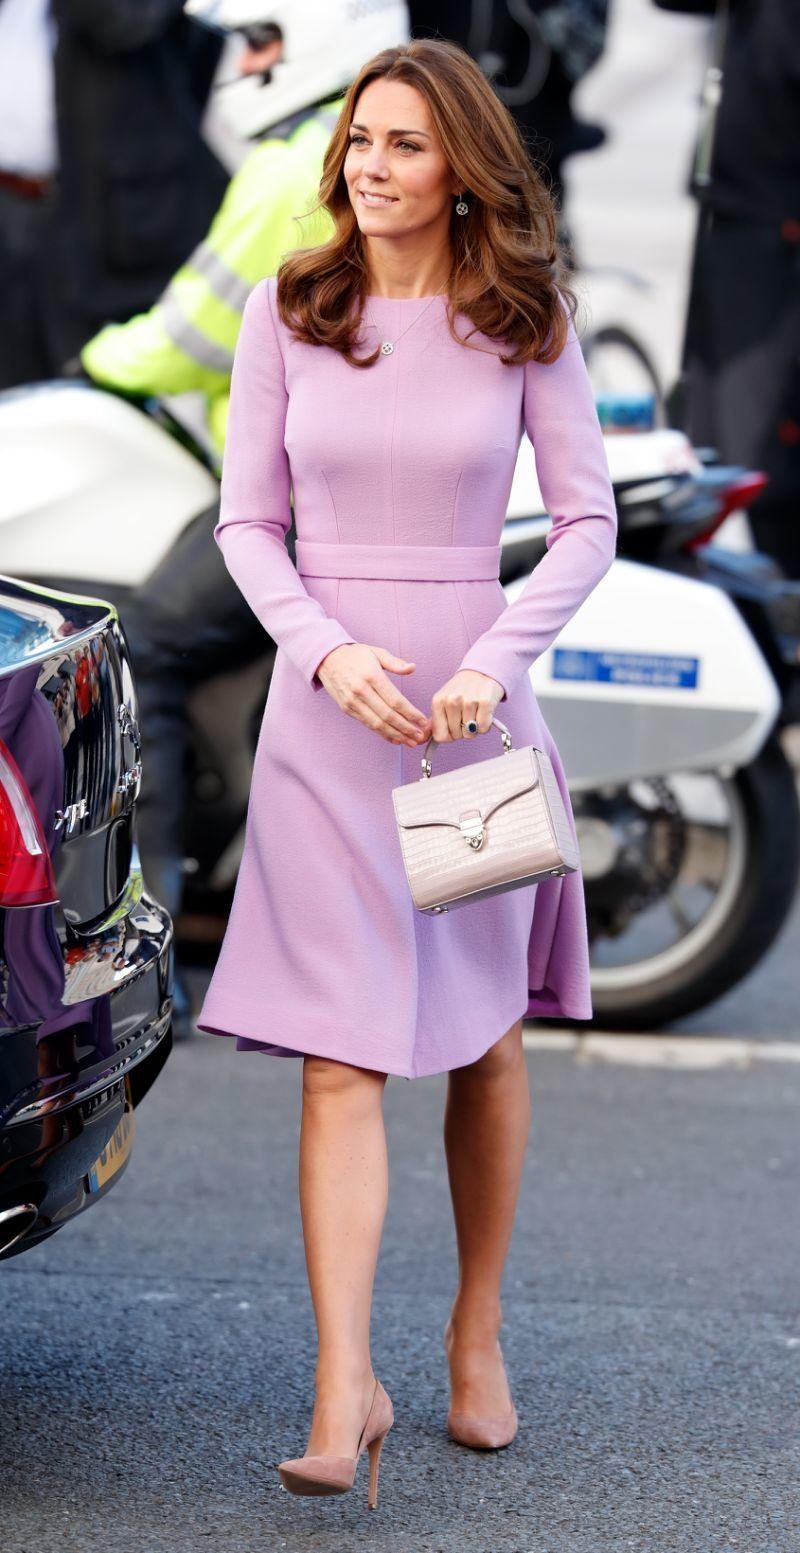 The Duchess of Cambridge opted for the Midi Mayfair Bag in lilac when she attended the Global Ministerial Mental Health Summit at London County Hall with husband Prince William in October 2018. (PHOTO: Getty Images)